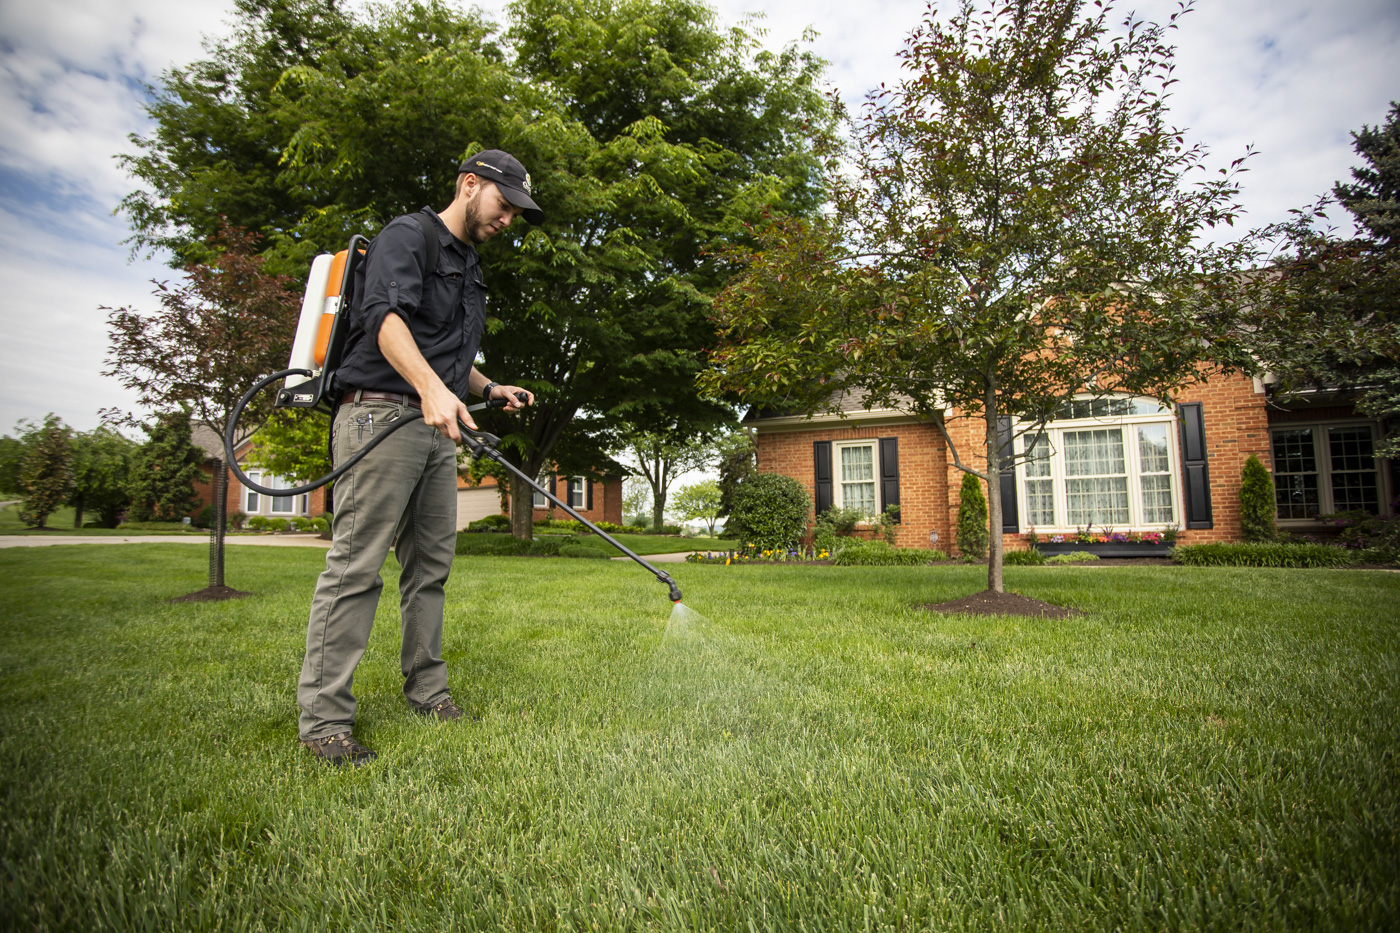 Lawn care technician spraying lawn in Cincinnati